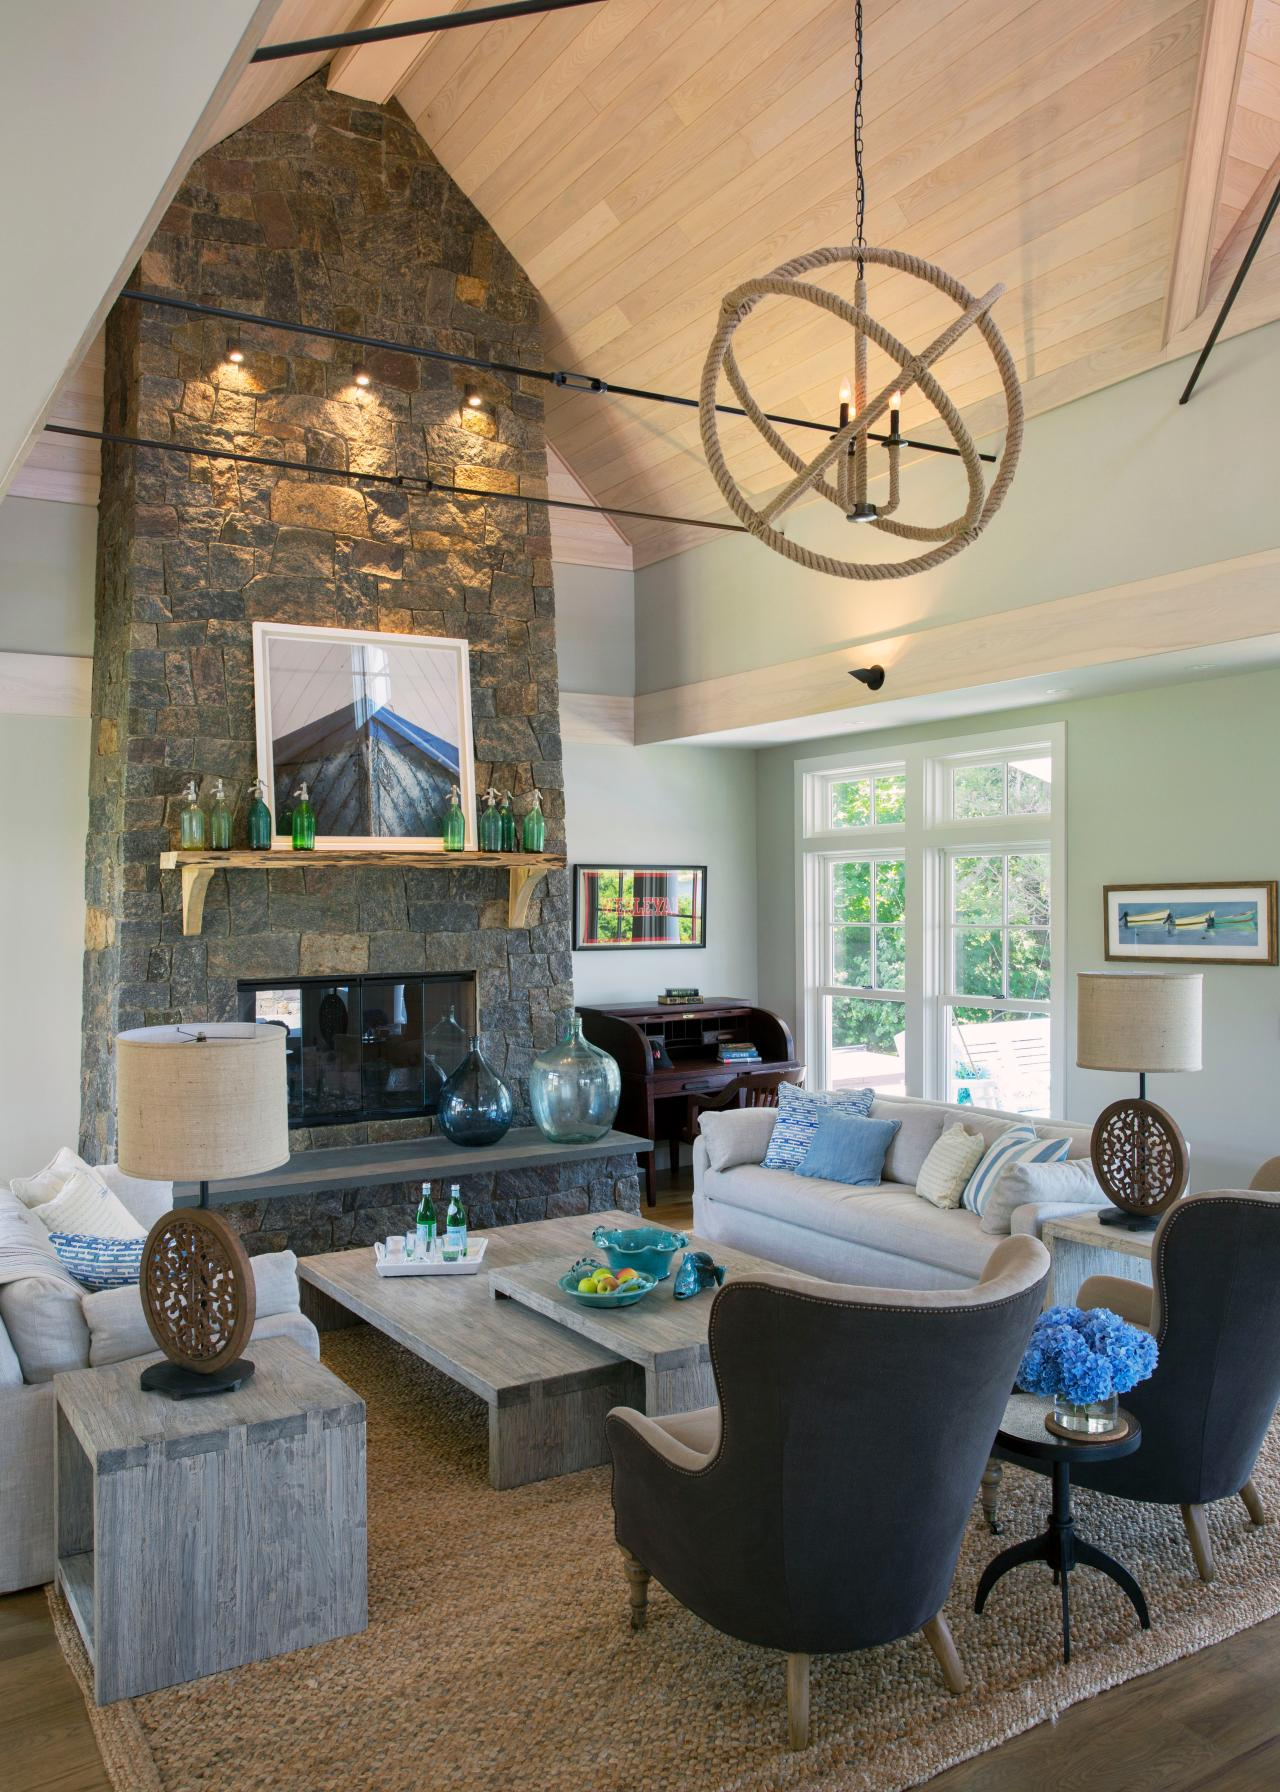 Cape cod great room with stone fireplace hgtv - Cape cod house interior ...